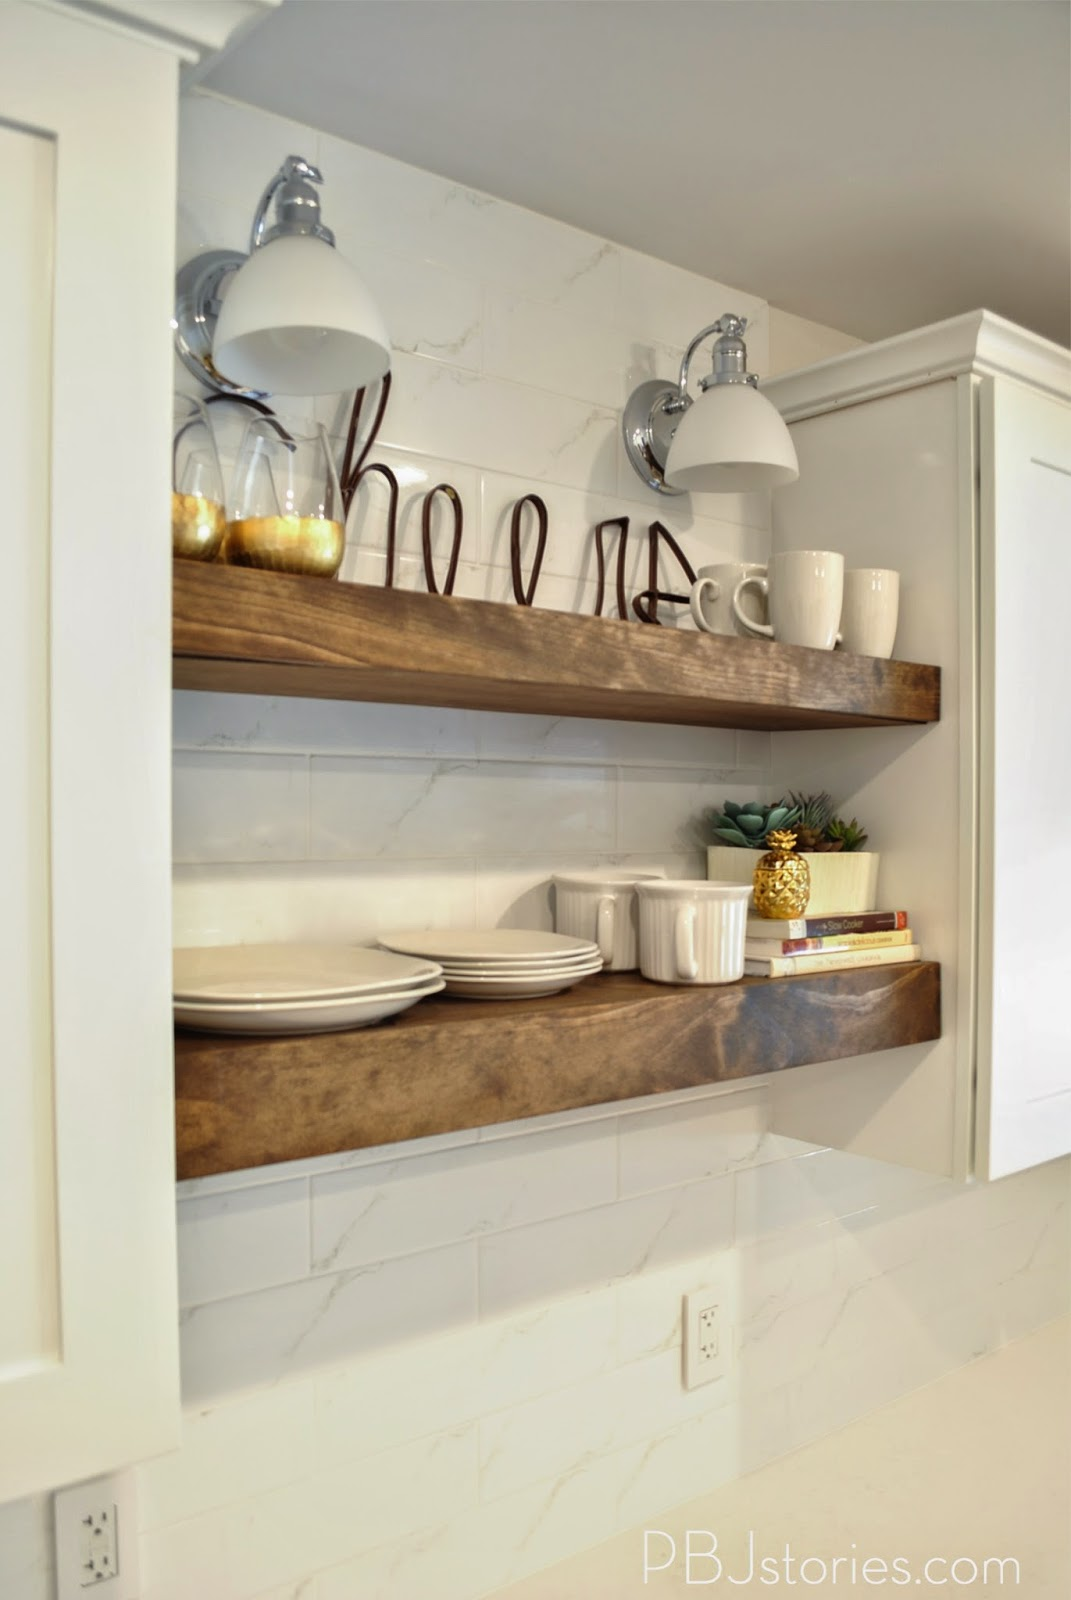 Pbjstories our diy open kitchen shelves pbjreno Floating shelf ideas for kitchen